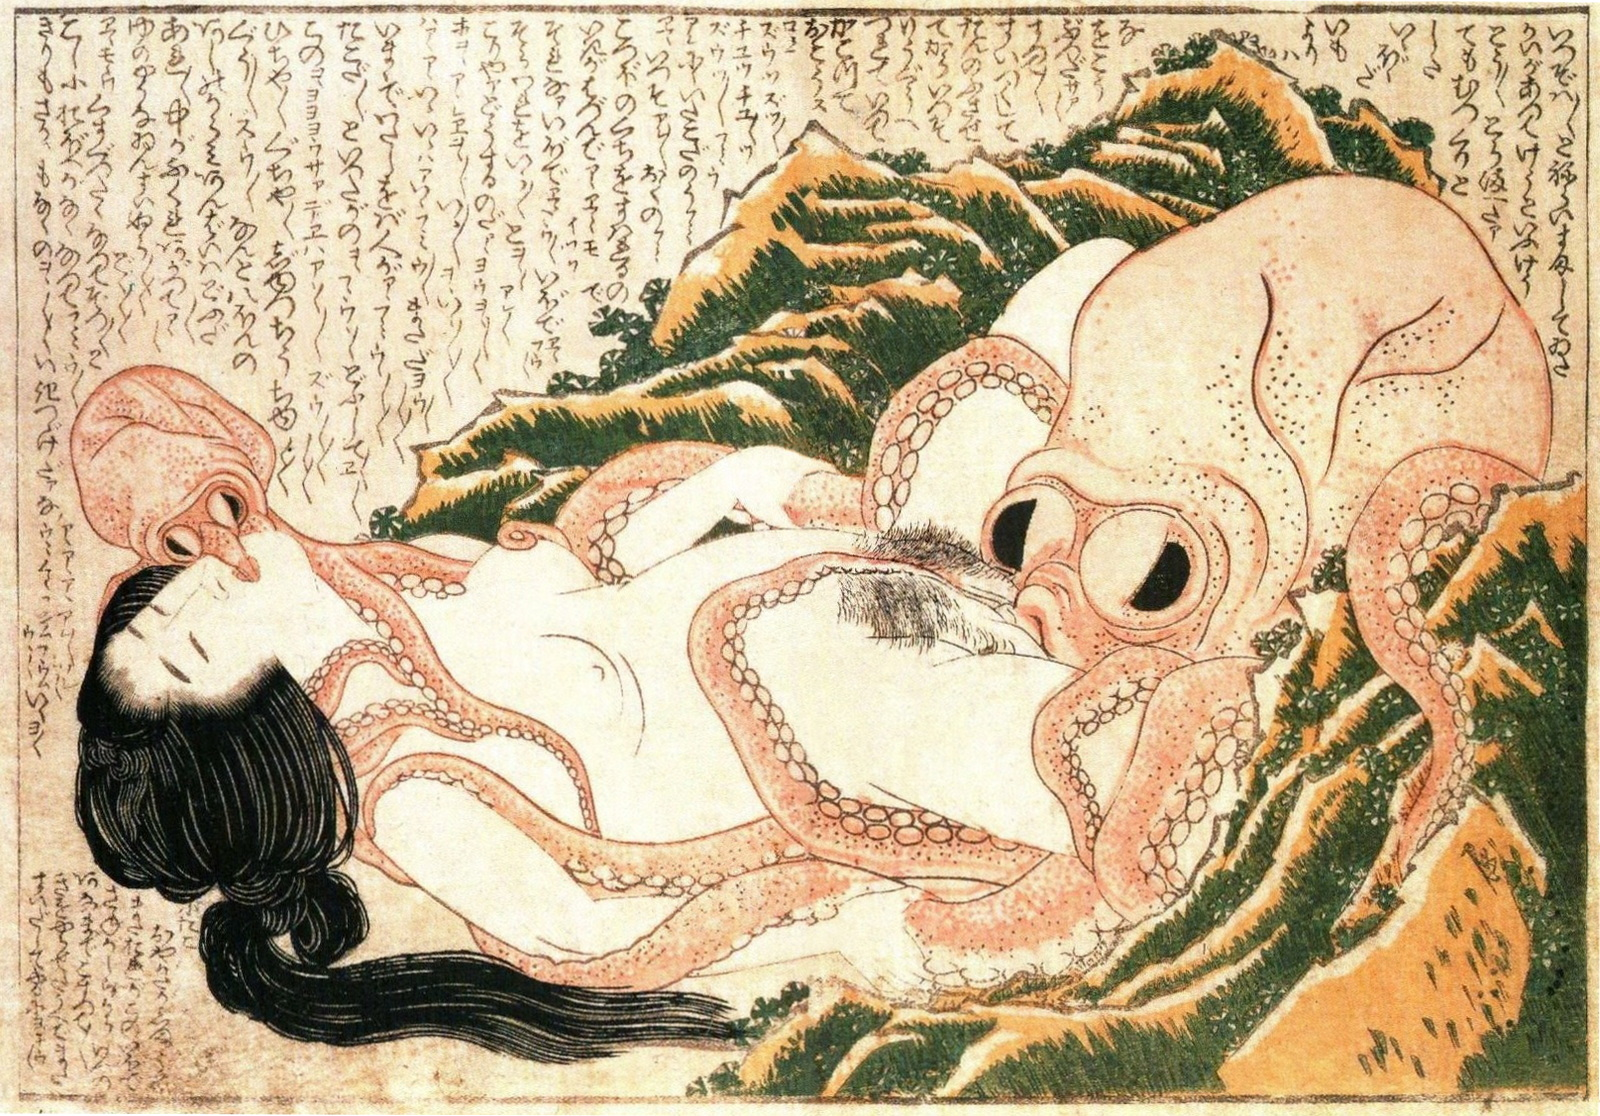 The Dream of the Fisherman's Wife; Hokusai, 1814